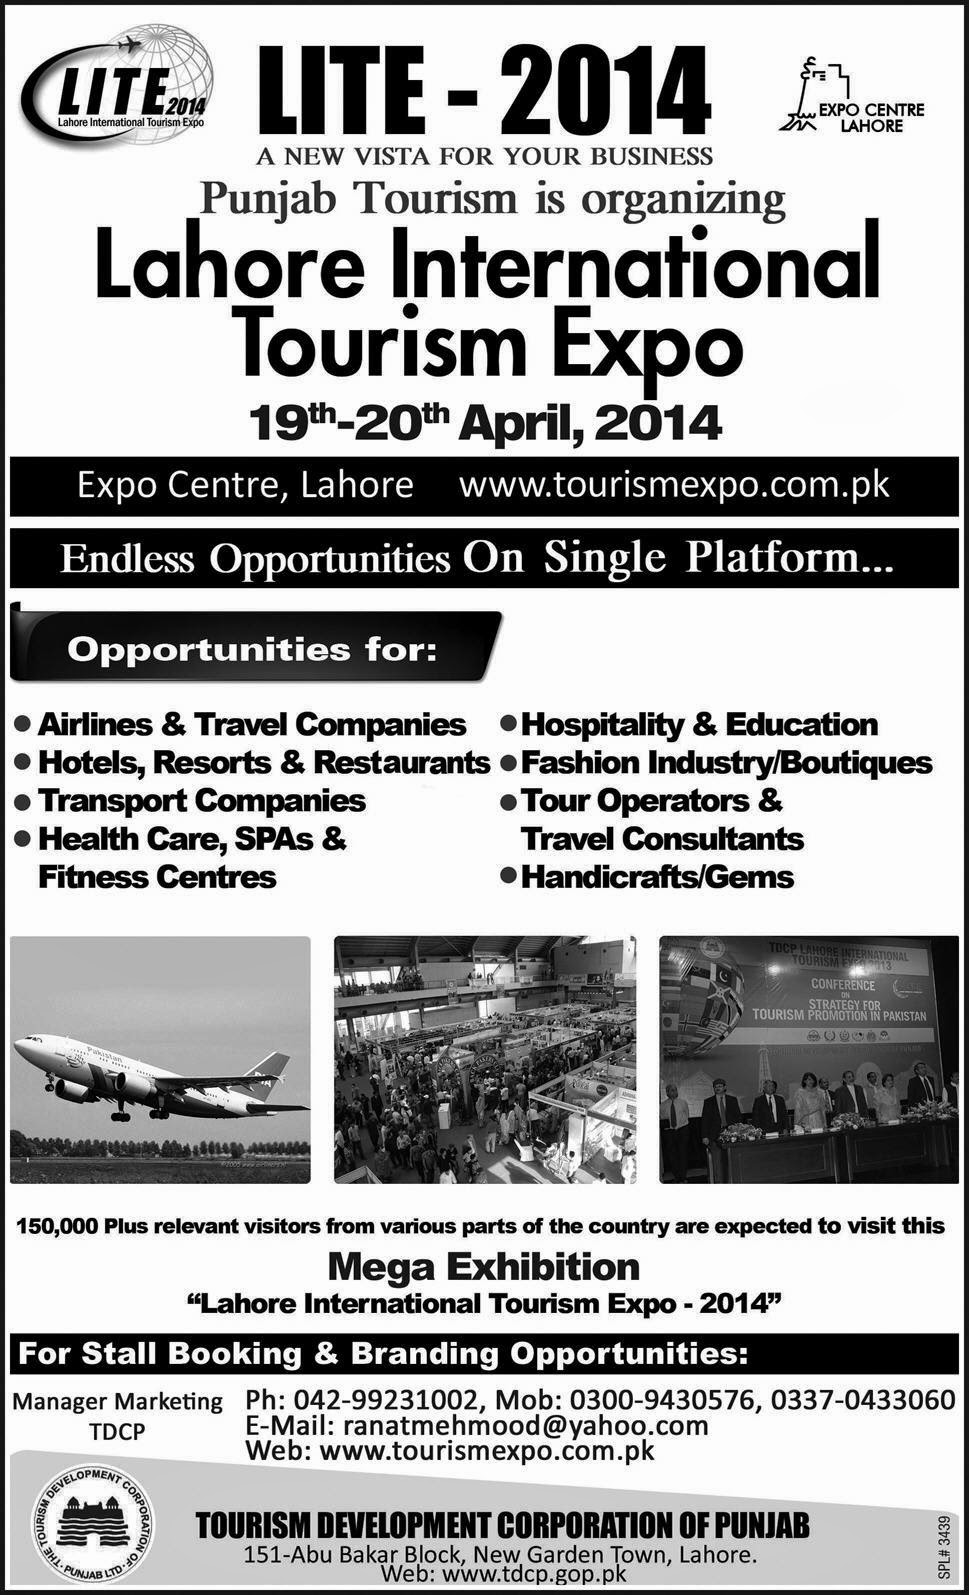 LITE 2014 Lahore International Tourism Expo 16th to 20th April 2014